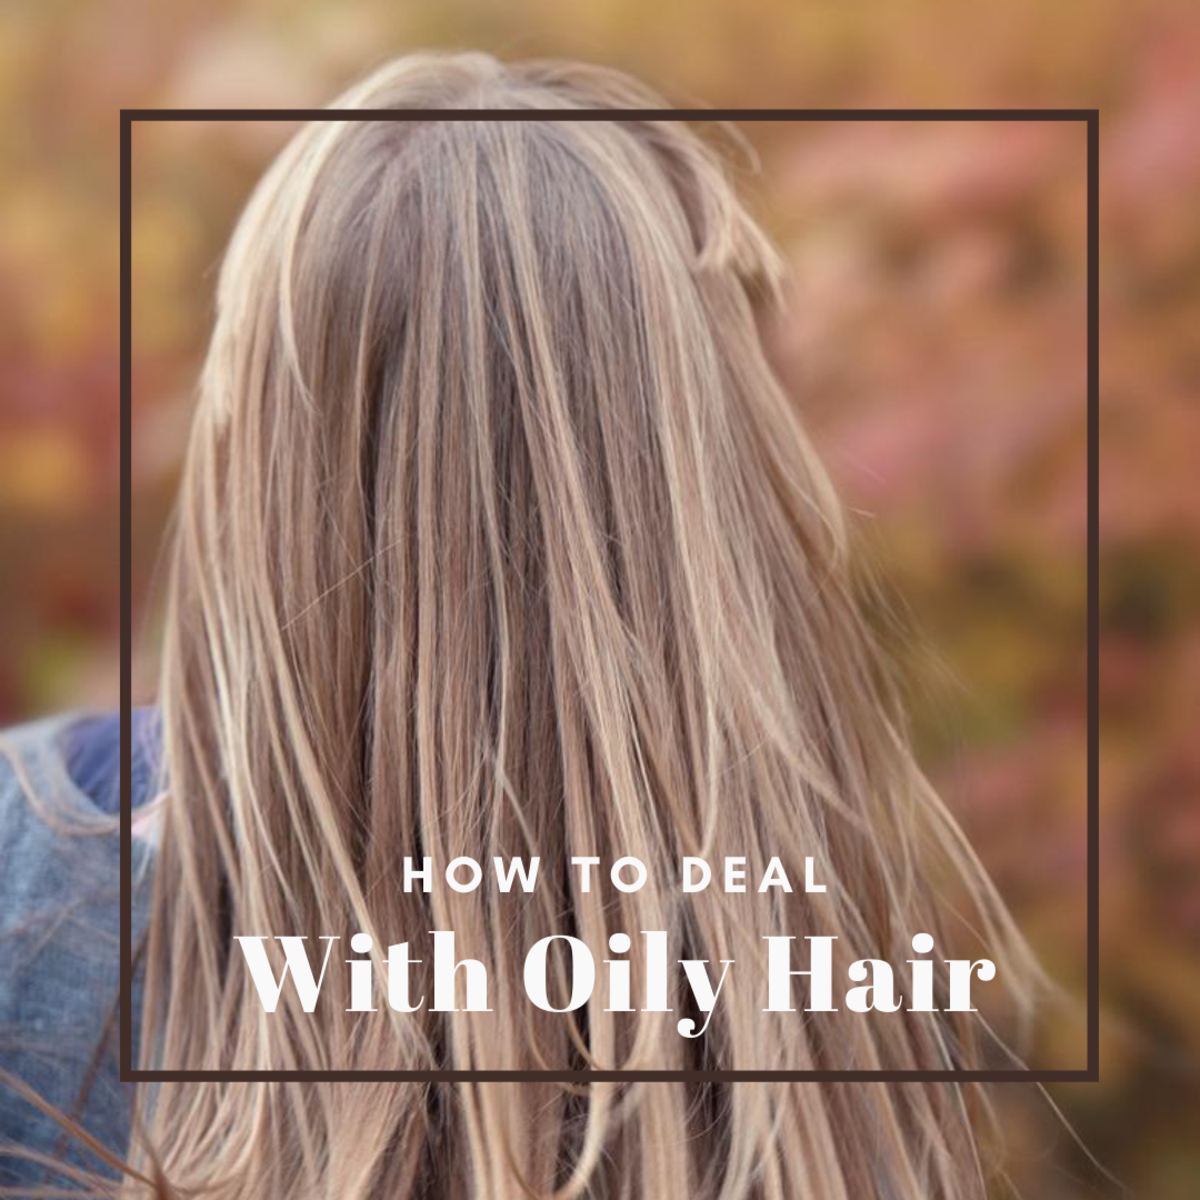 List of Products You Can Use to Control Oily Hair